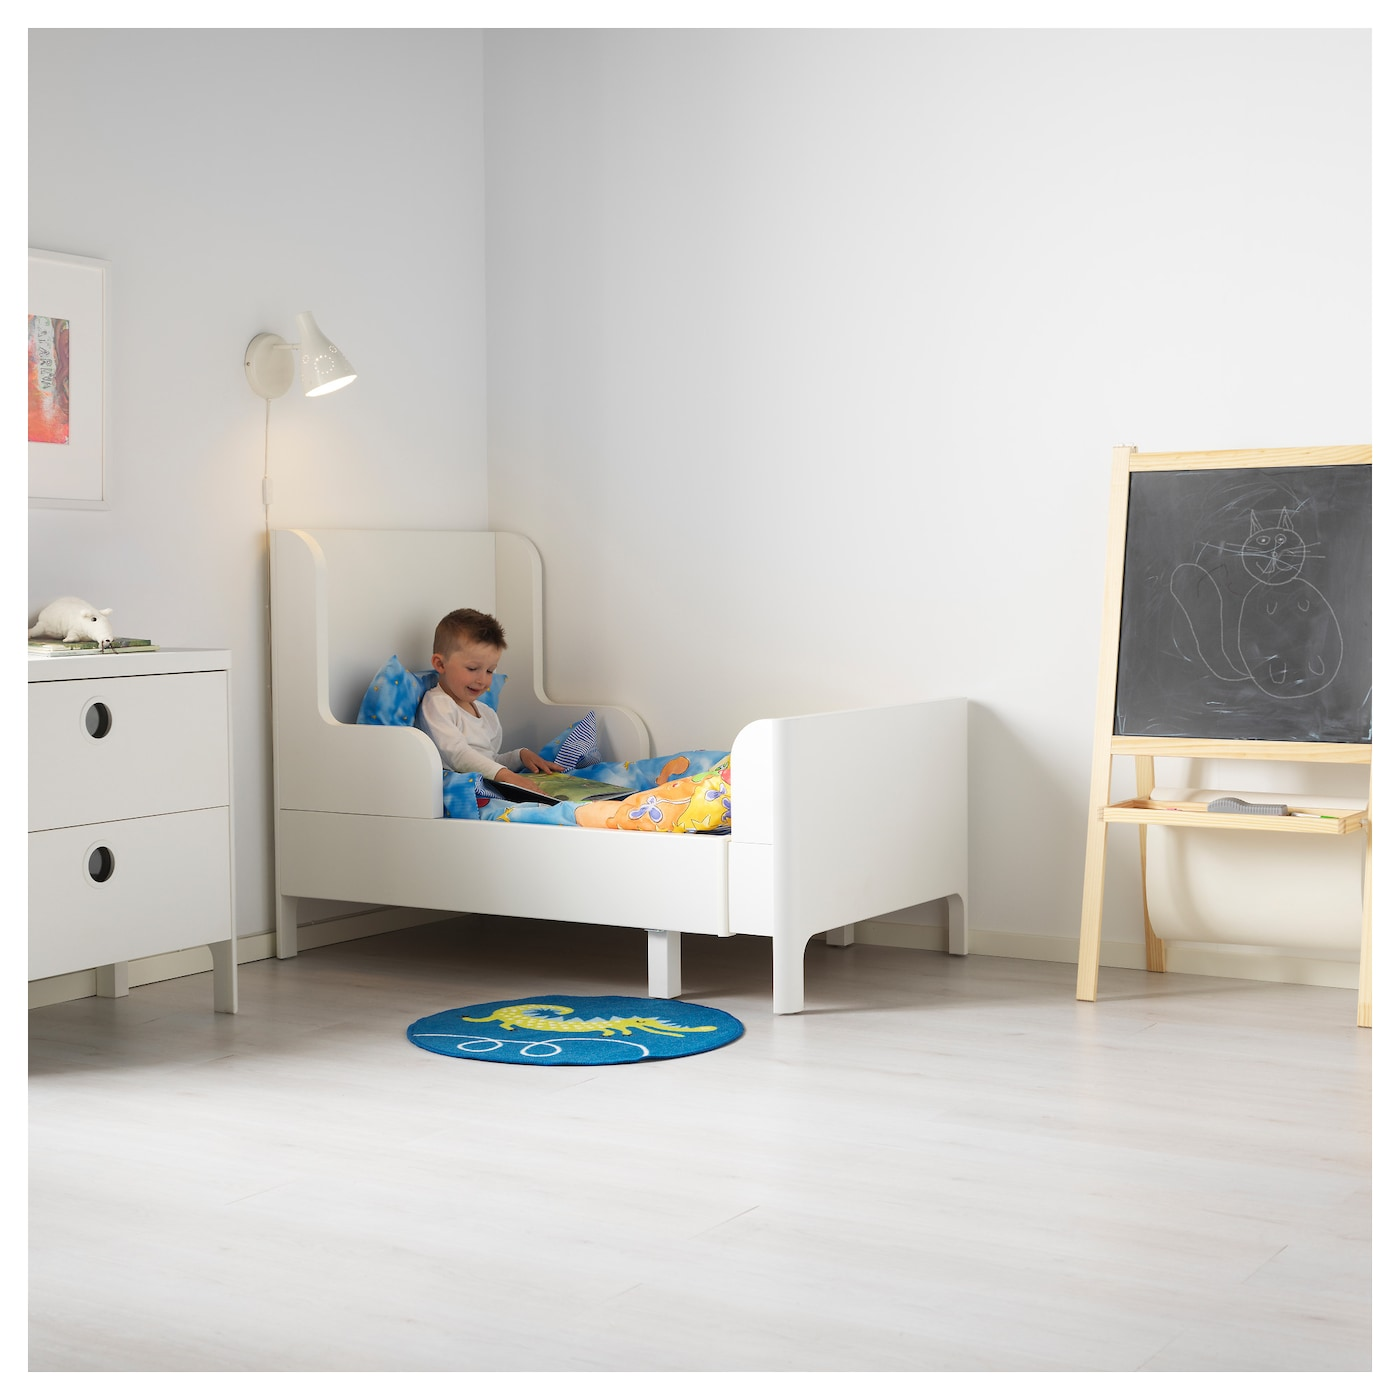 Busunge extendable bed white 80x200 cm ikea for Ikea children furniture